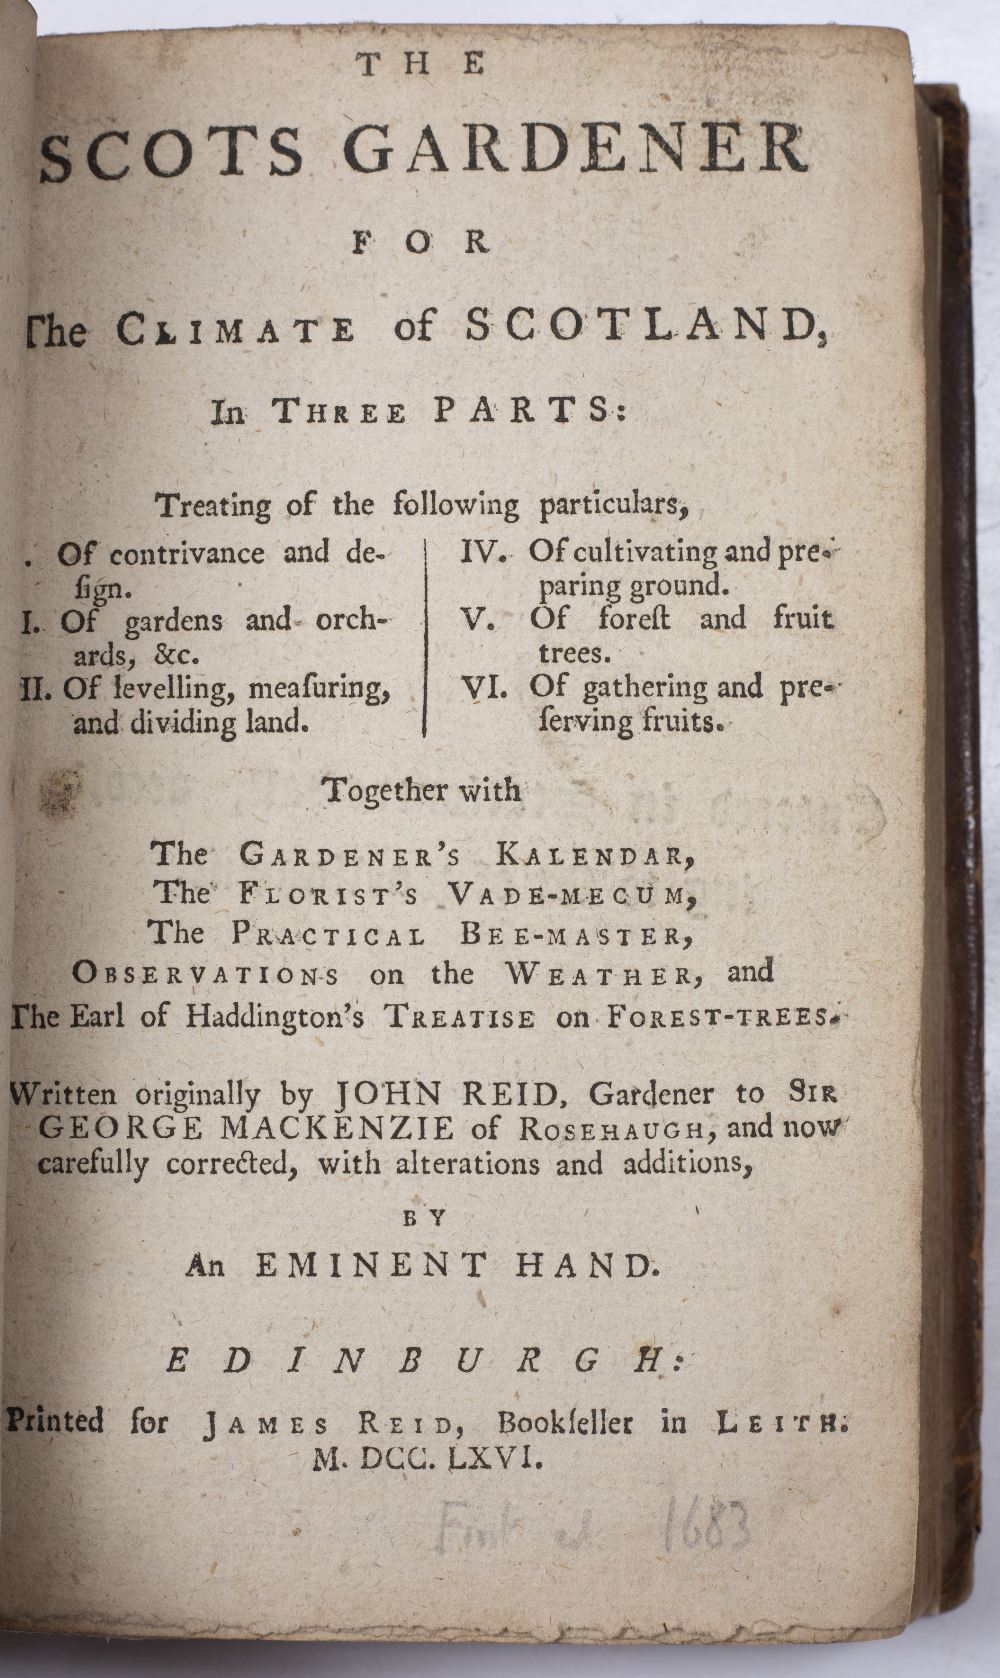 AUSTEN, R.A. 'A Treatise of Fruit Trees', 'Profits - Pleasures' Thomas Robinson, Oxford 1653 with - Image 3 of 4